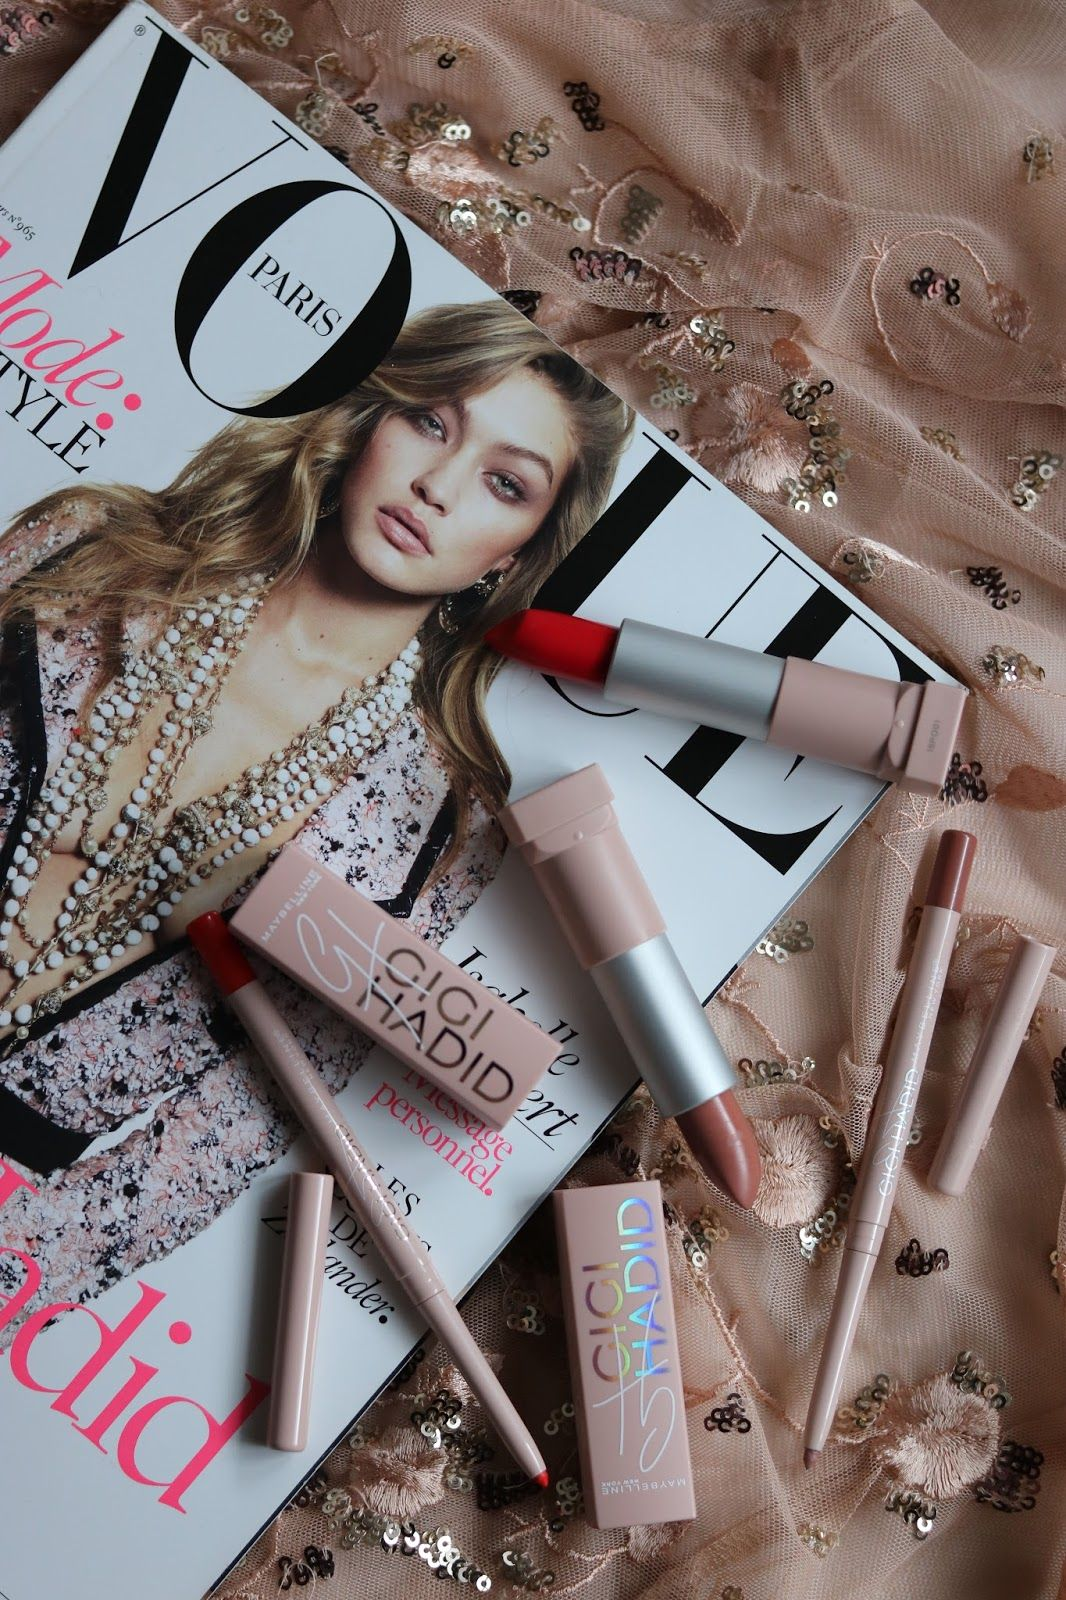 Maybelline New York x Gigi Hadid lipsticks Предметы